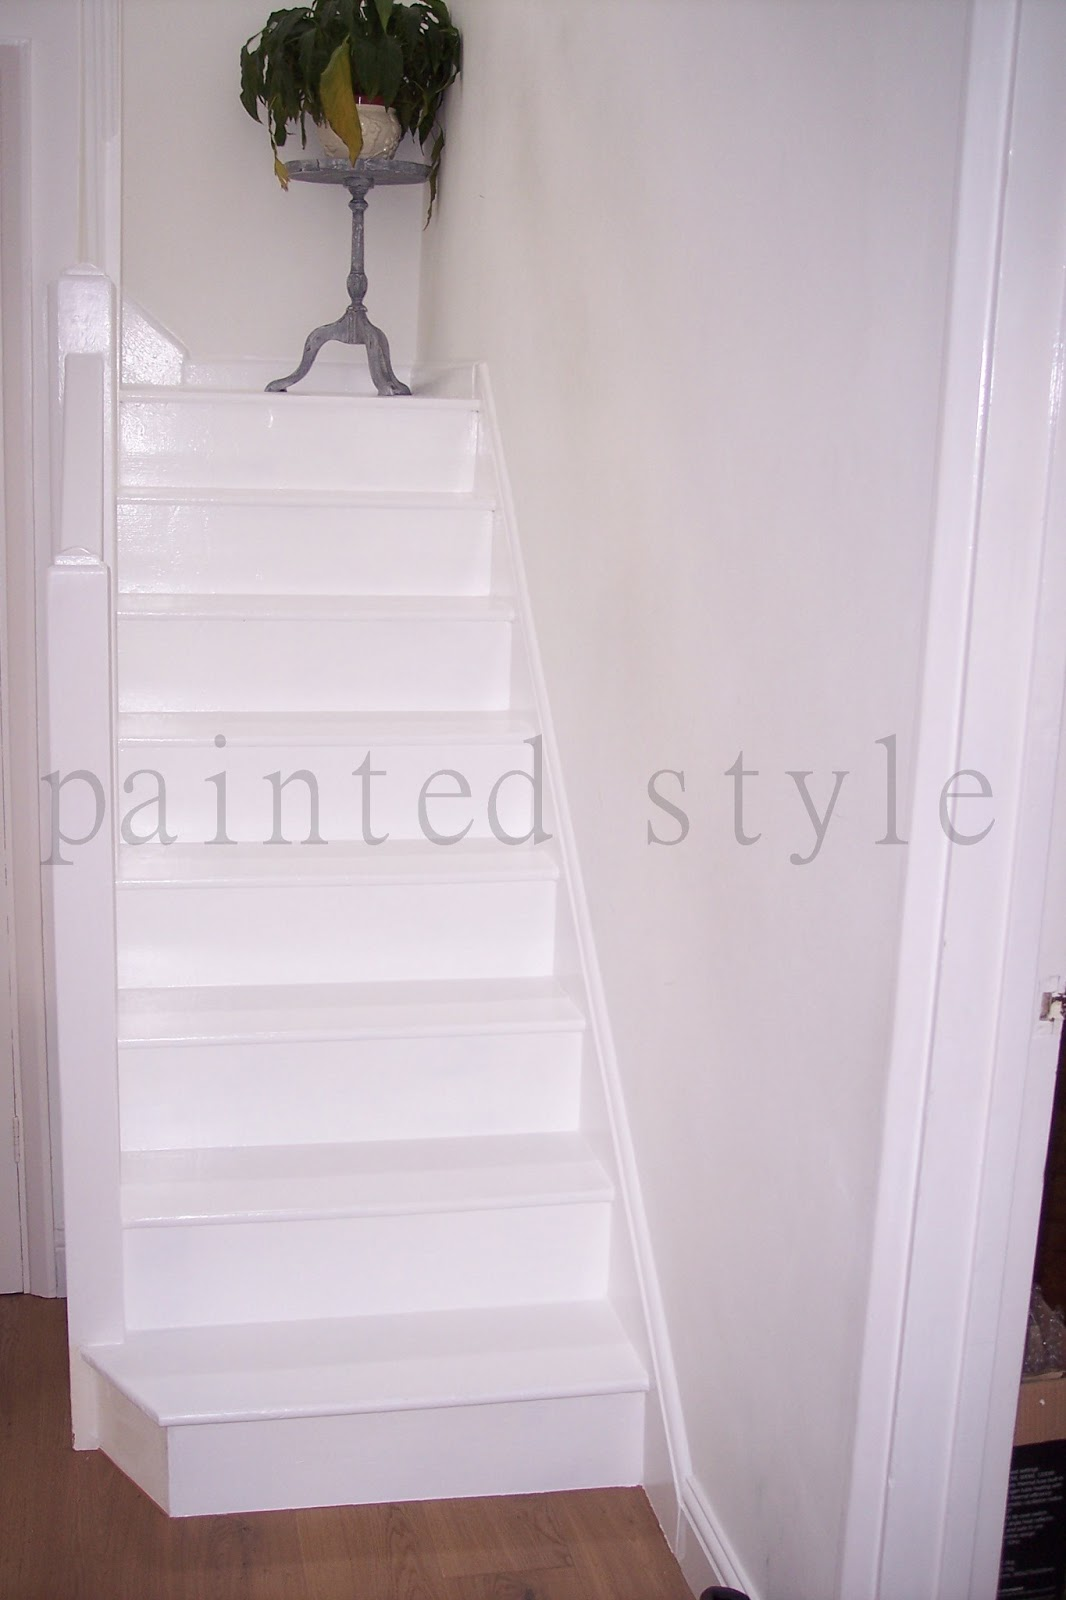 Painted Stairs Paint And Style Painted Stairs Revealed